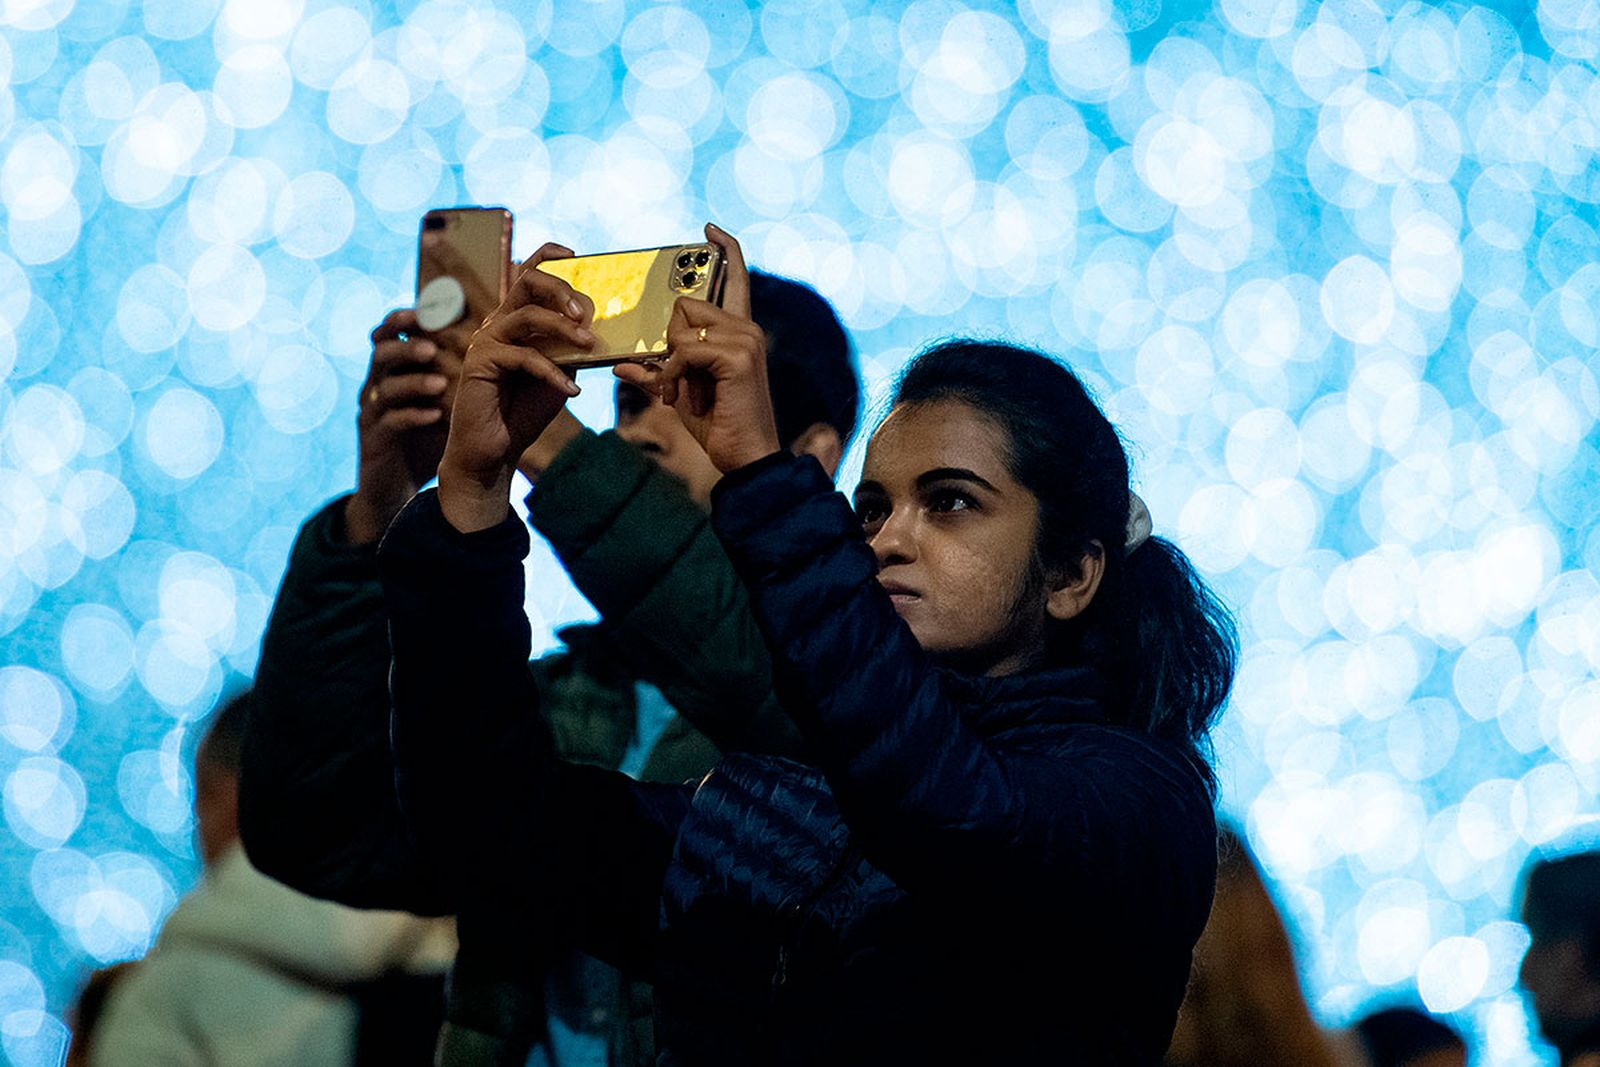 Woman takes photo with iPhone